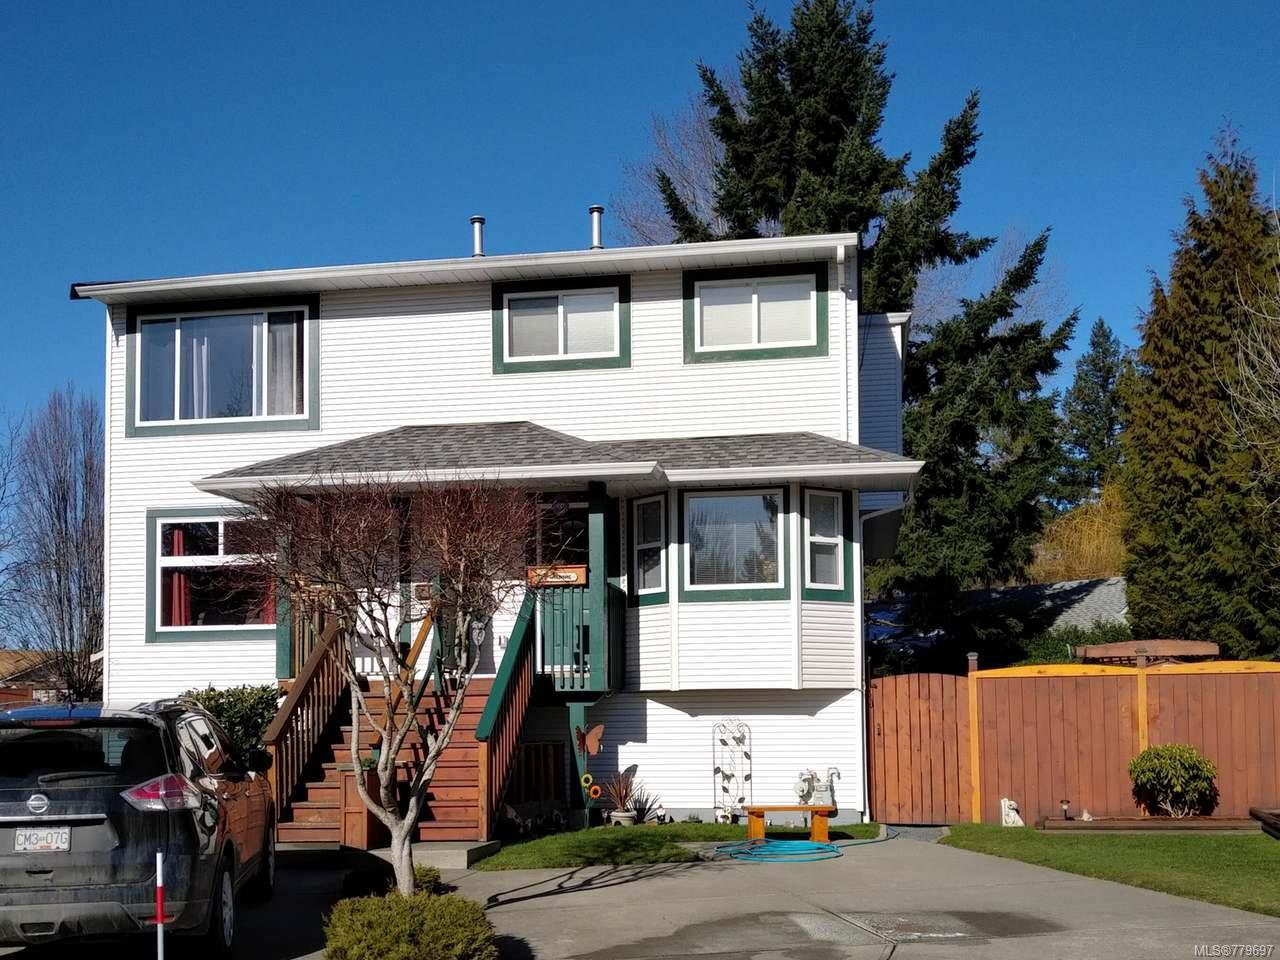 Main Photo: B 1950 CHOQUETTE PLACE in COURTENAY: CV Courtenay City Half Duplex for sale (Comox Valley)  : MLS®# 779697